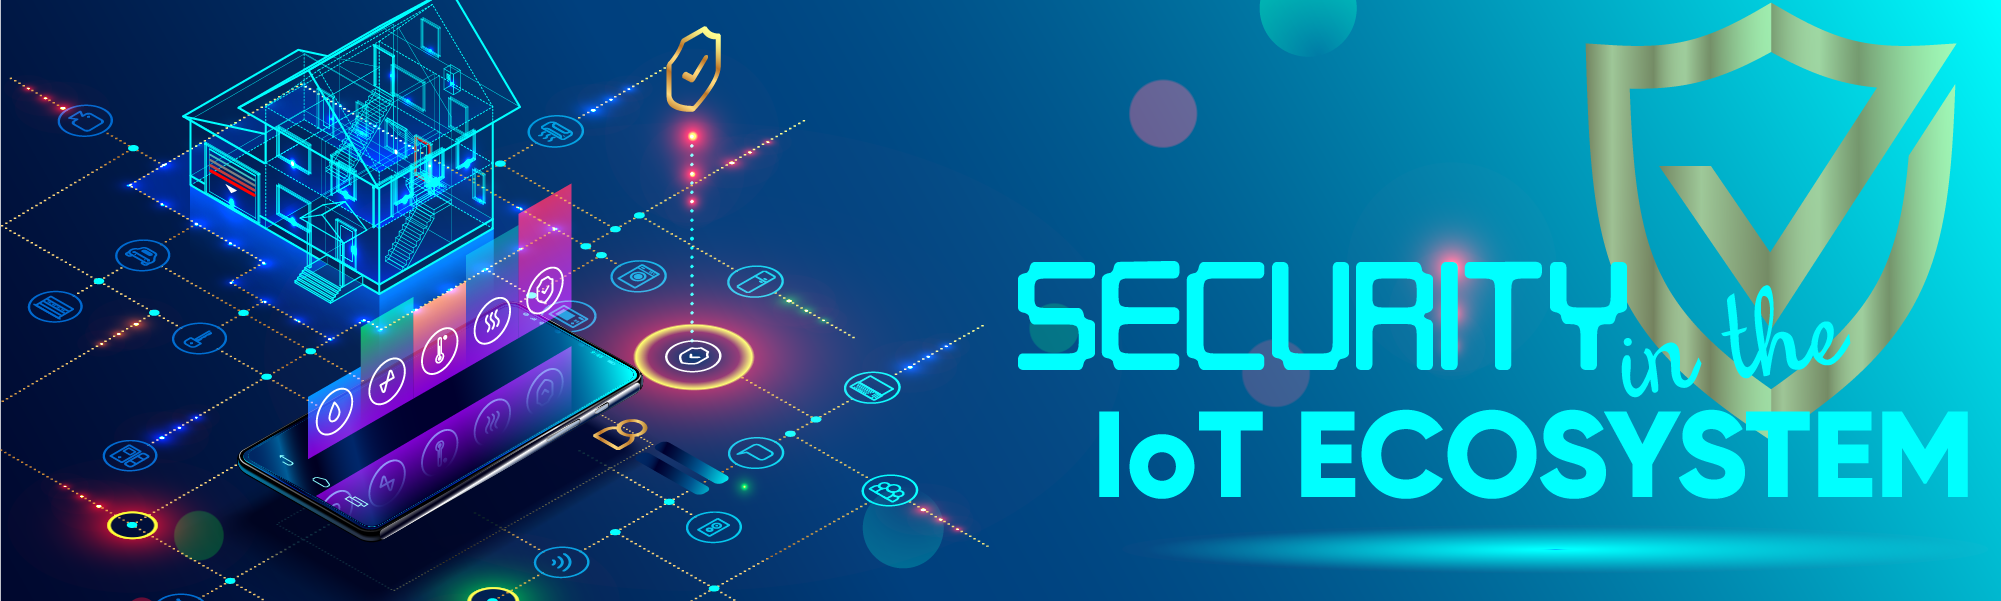 IoT security webinar series@2x.png